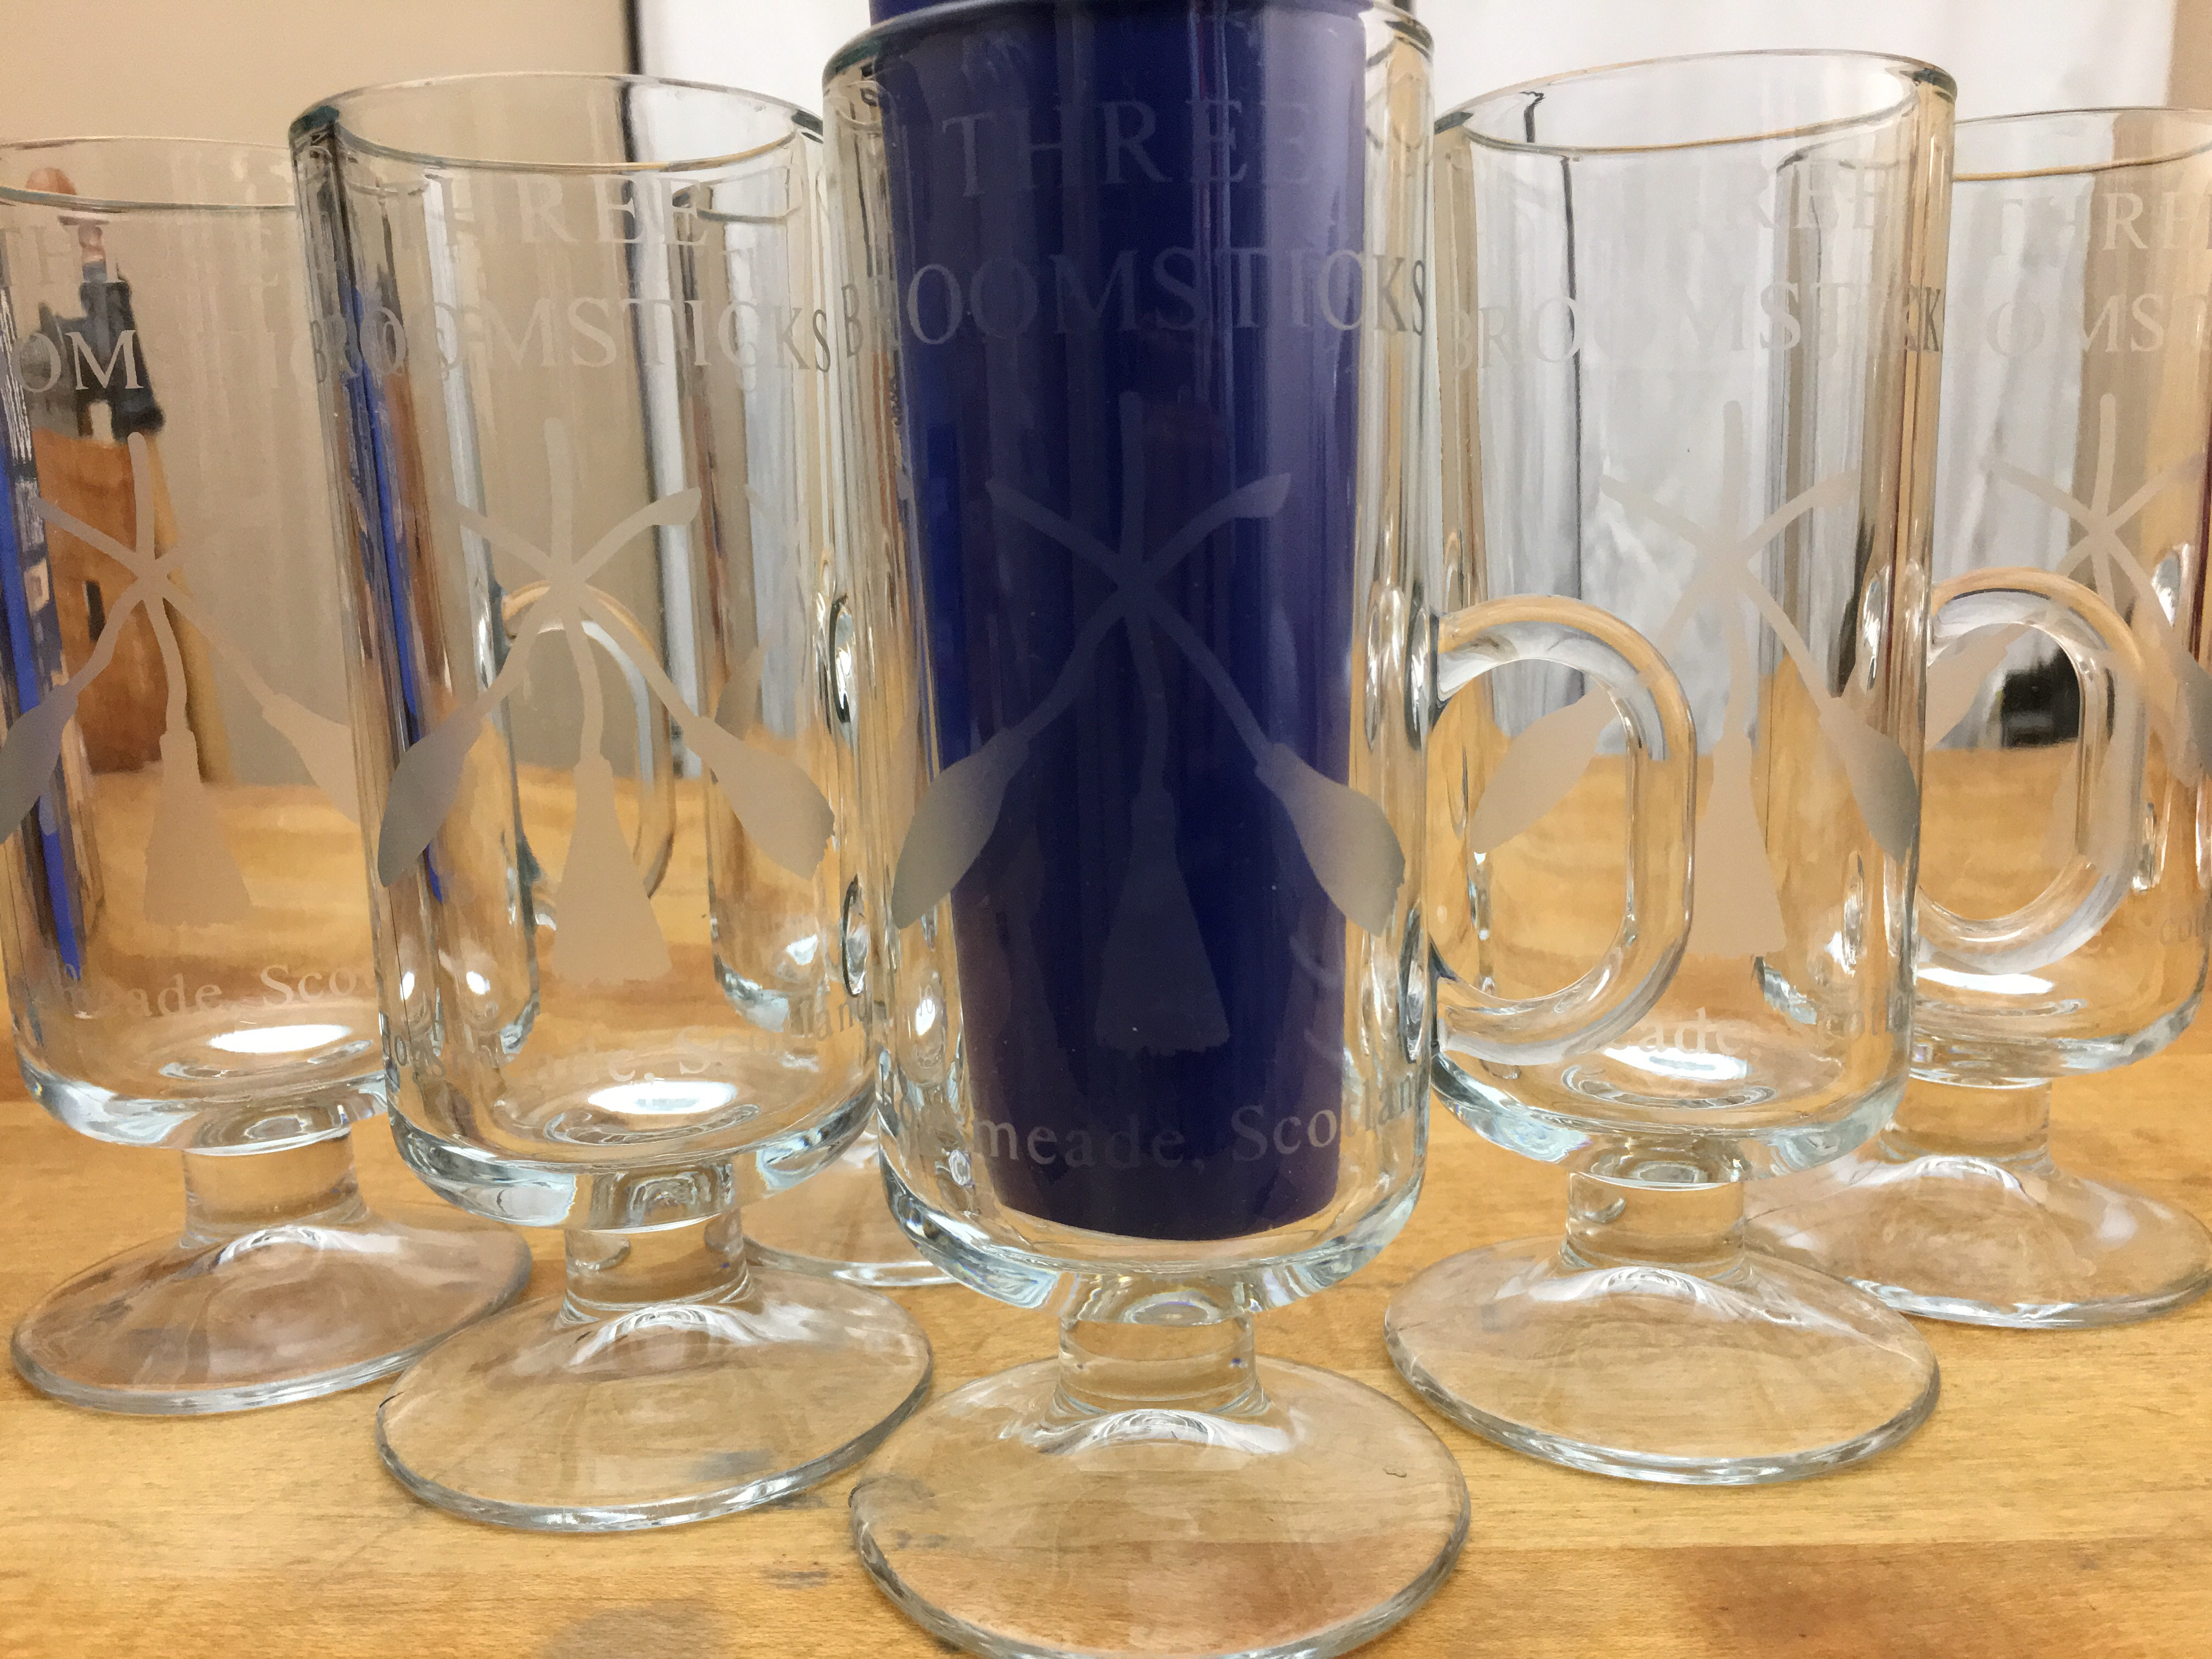 Potter – Glass Broomsticks Harry Three Inspired Etched Mugs 5A43LRj